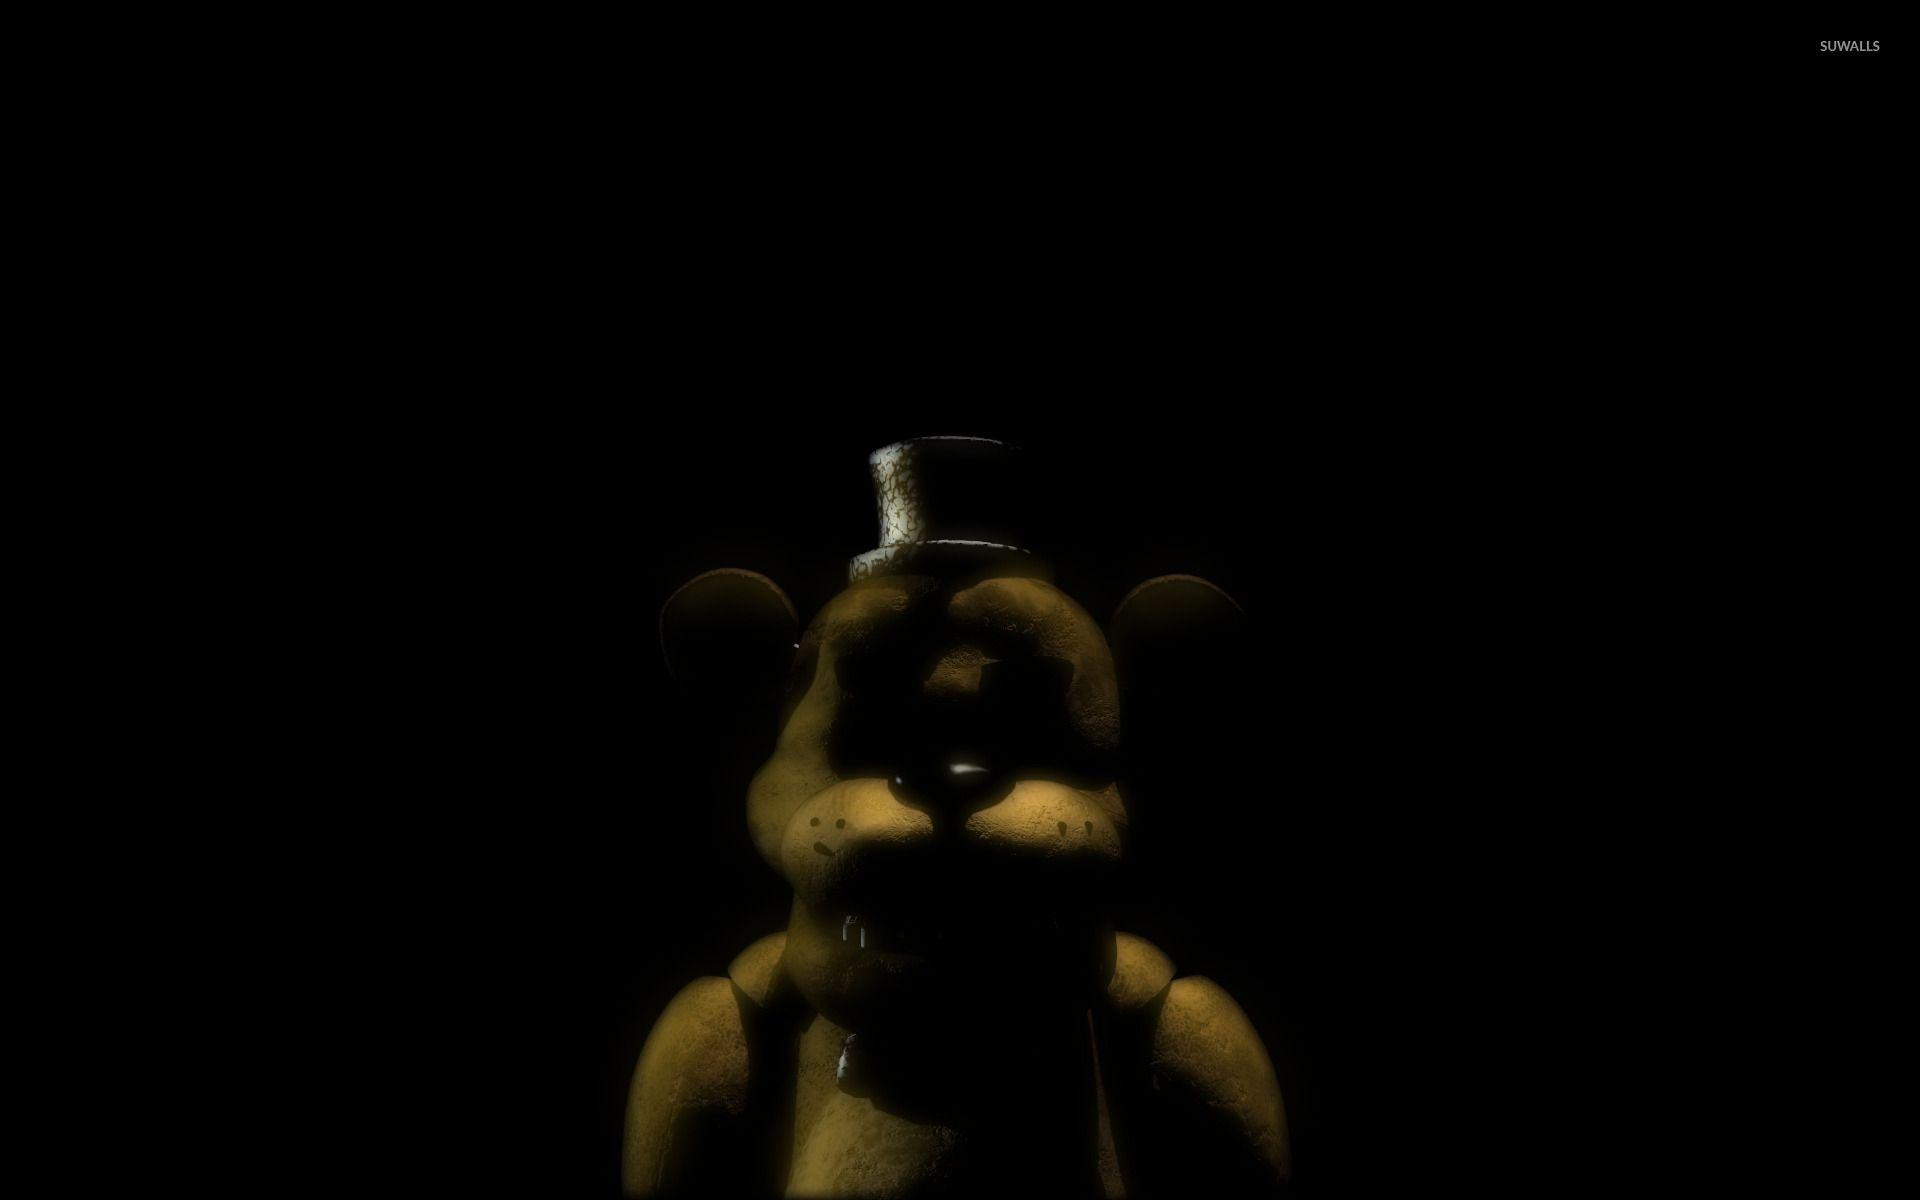 Five Nights at Freddy's wallpapers